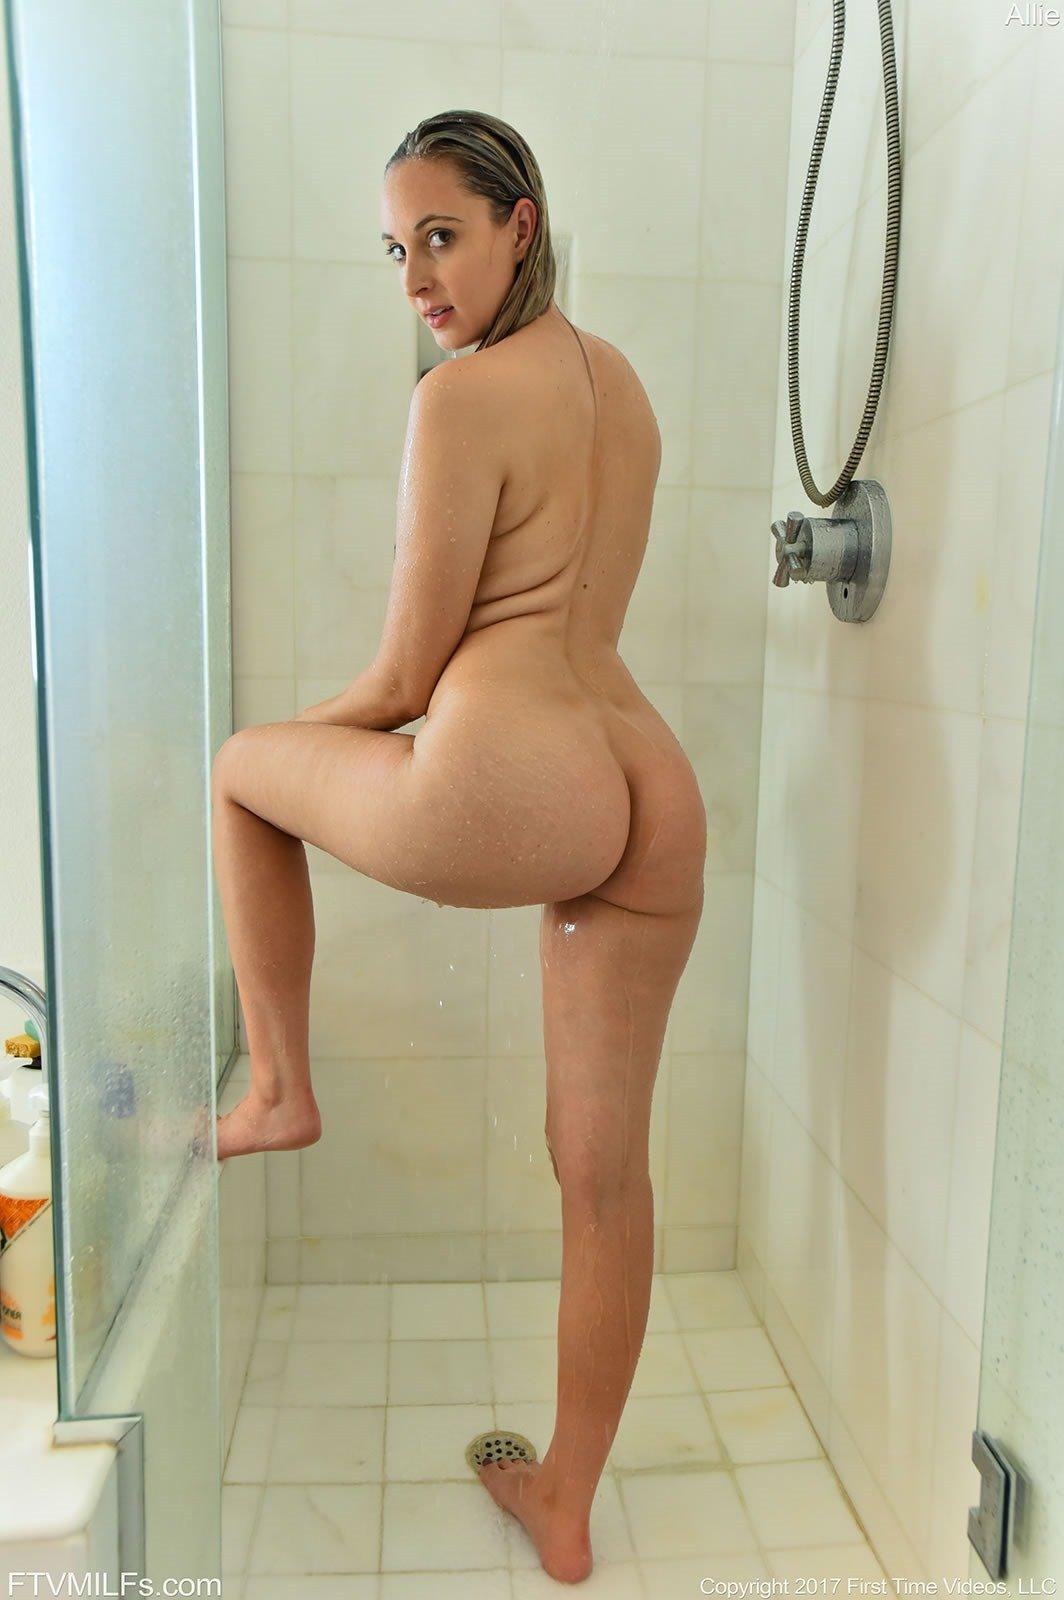 naughty allie shower